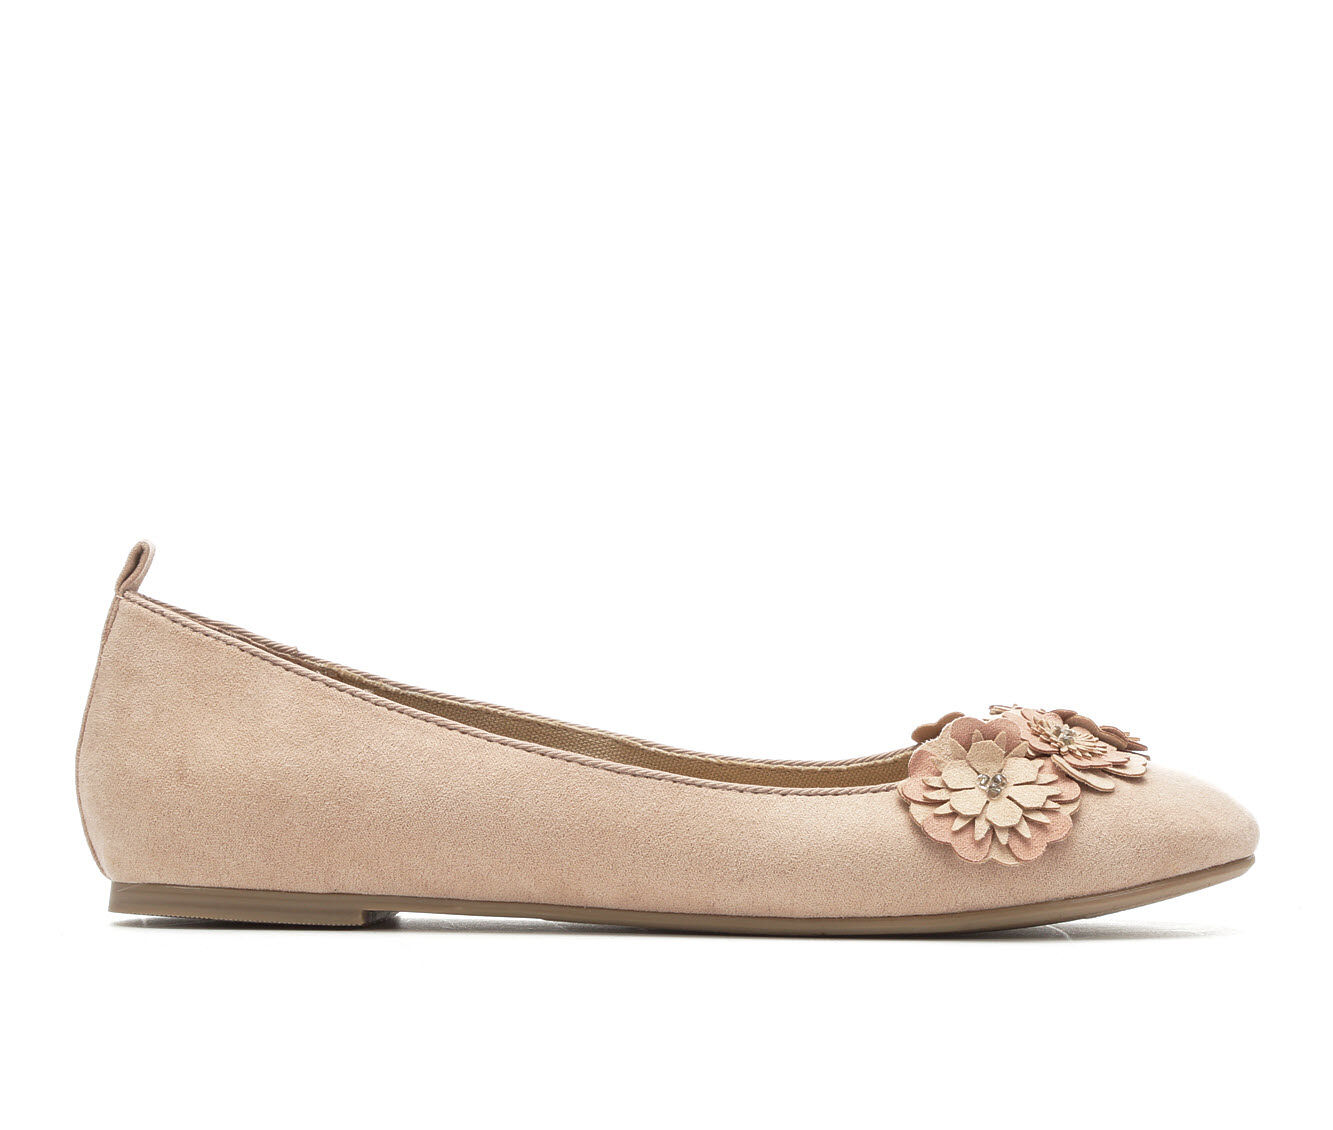 outlet discounts Women's David Aaron Olivia Flats cheap free shipping IbSQ1cme